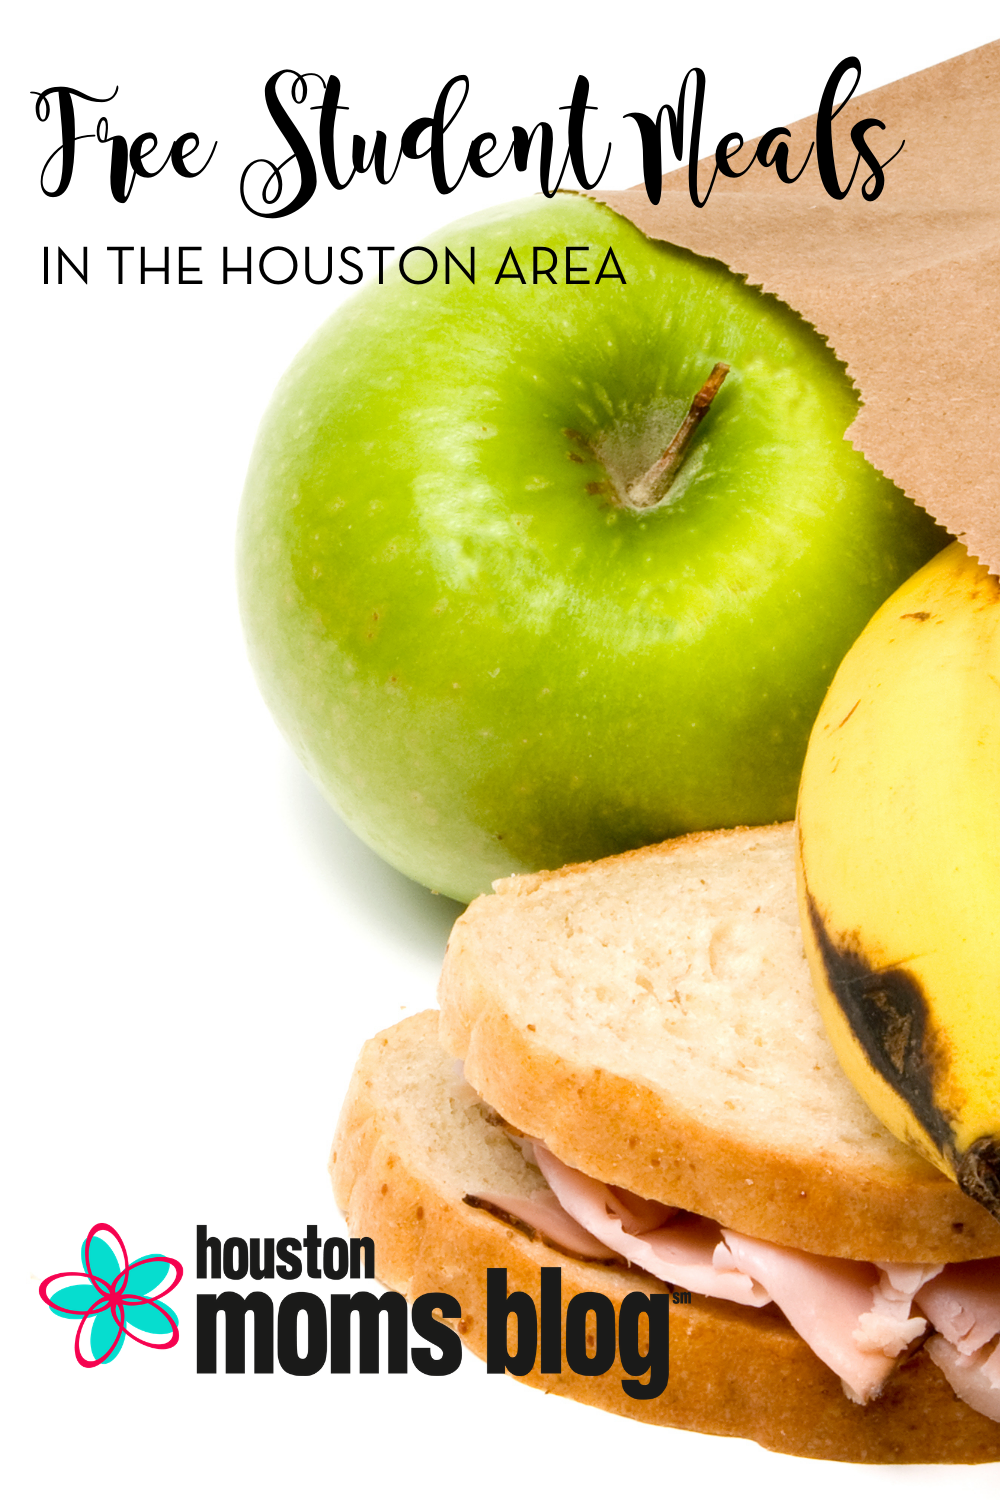 """Houston Moms Blog """"Free Student Meals in the Houston Area"""" #houstonmoms #houstonmomsblog #momsaroundhouston"""